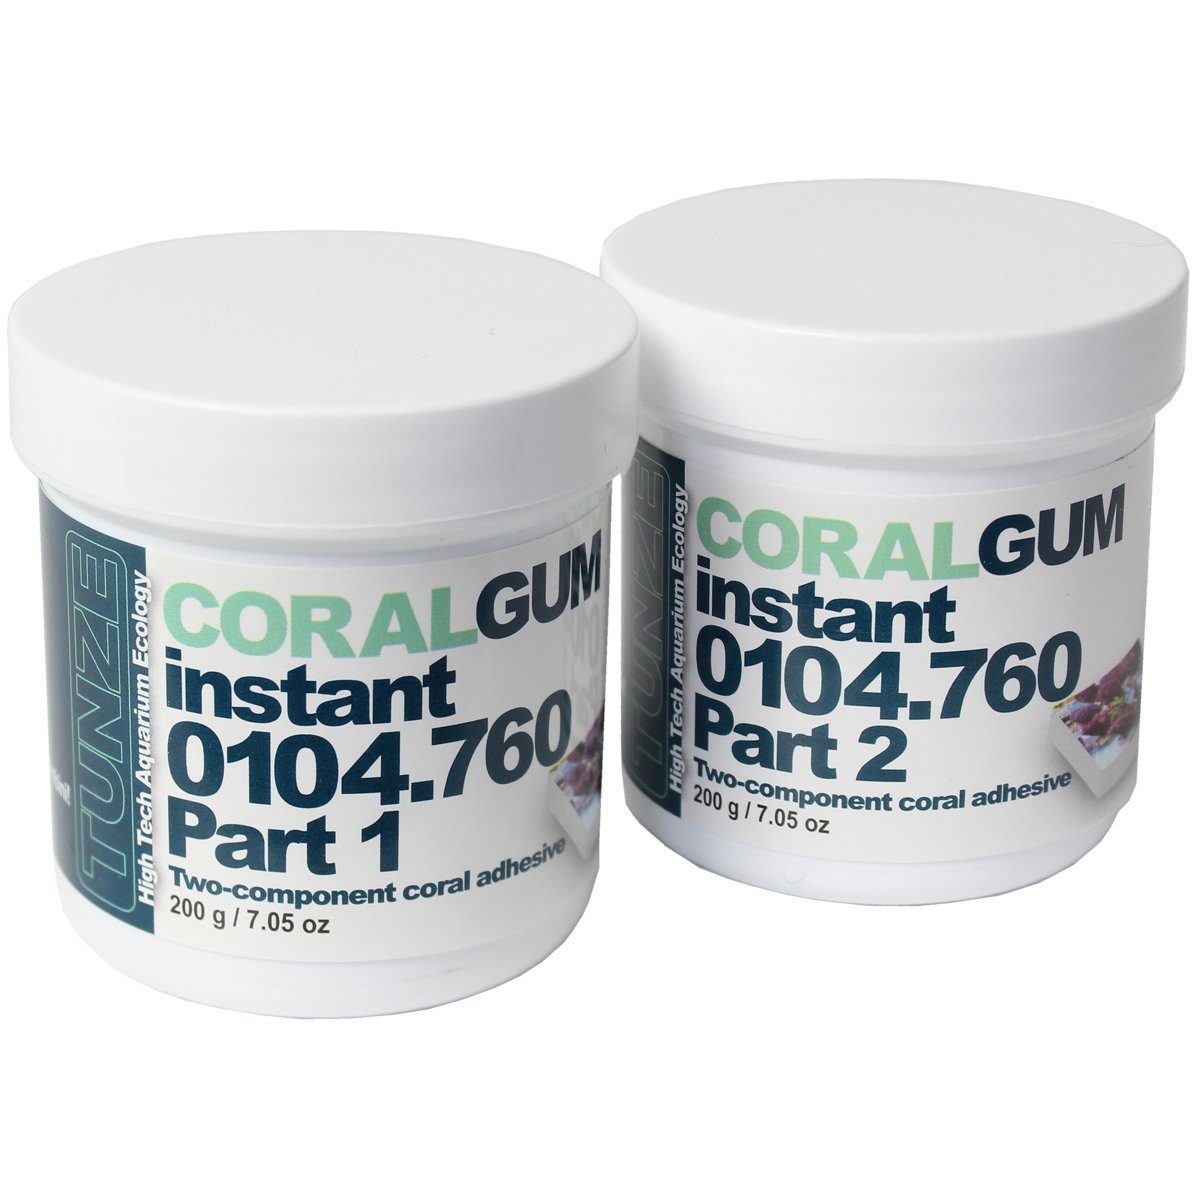 Coral Gum Instant 400gm Coral Adhesive by Tunze